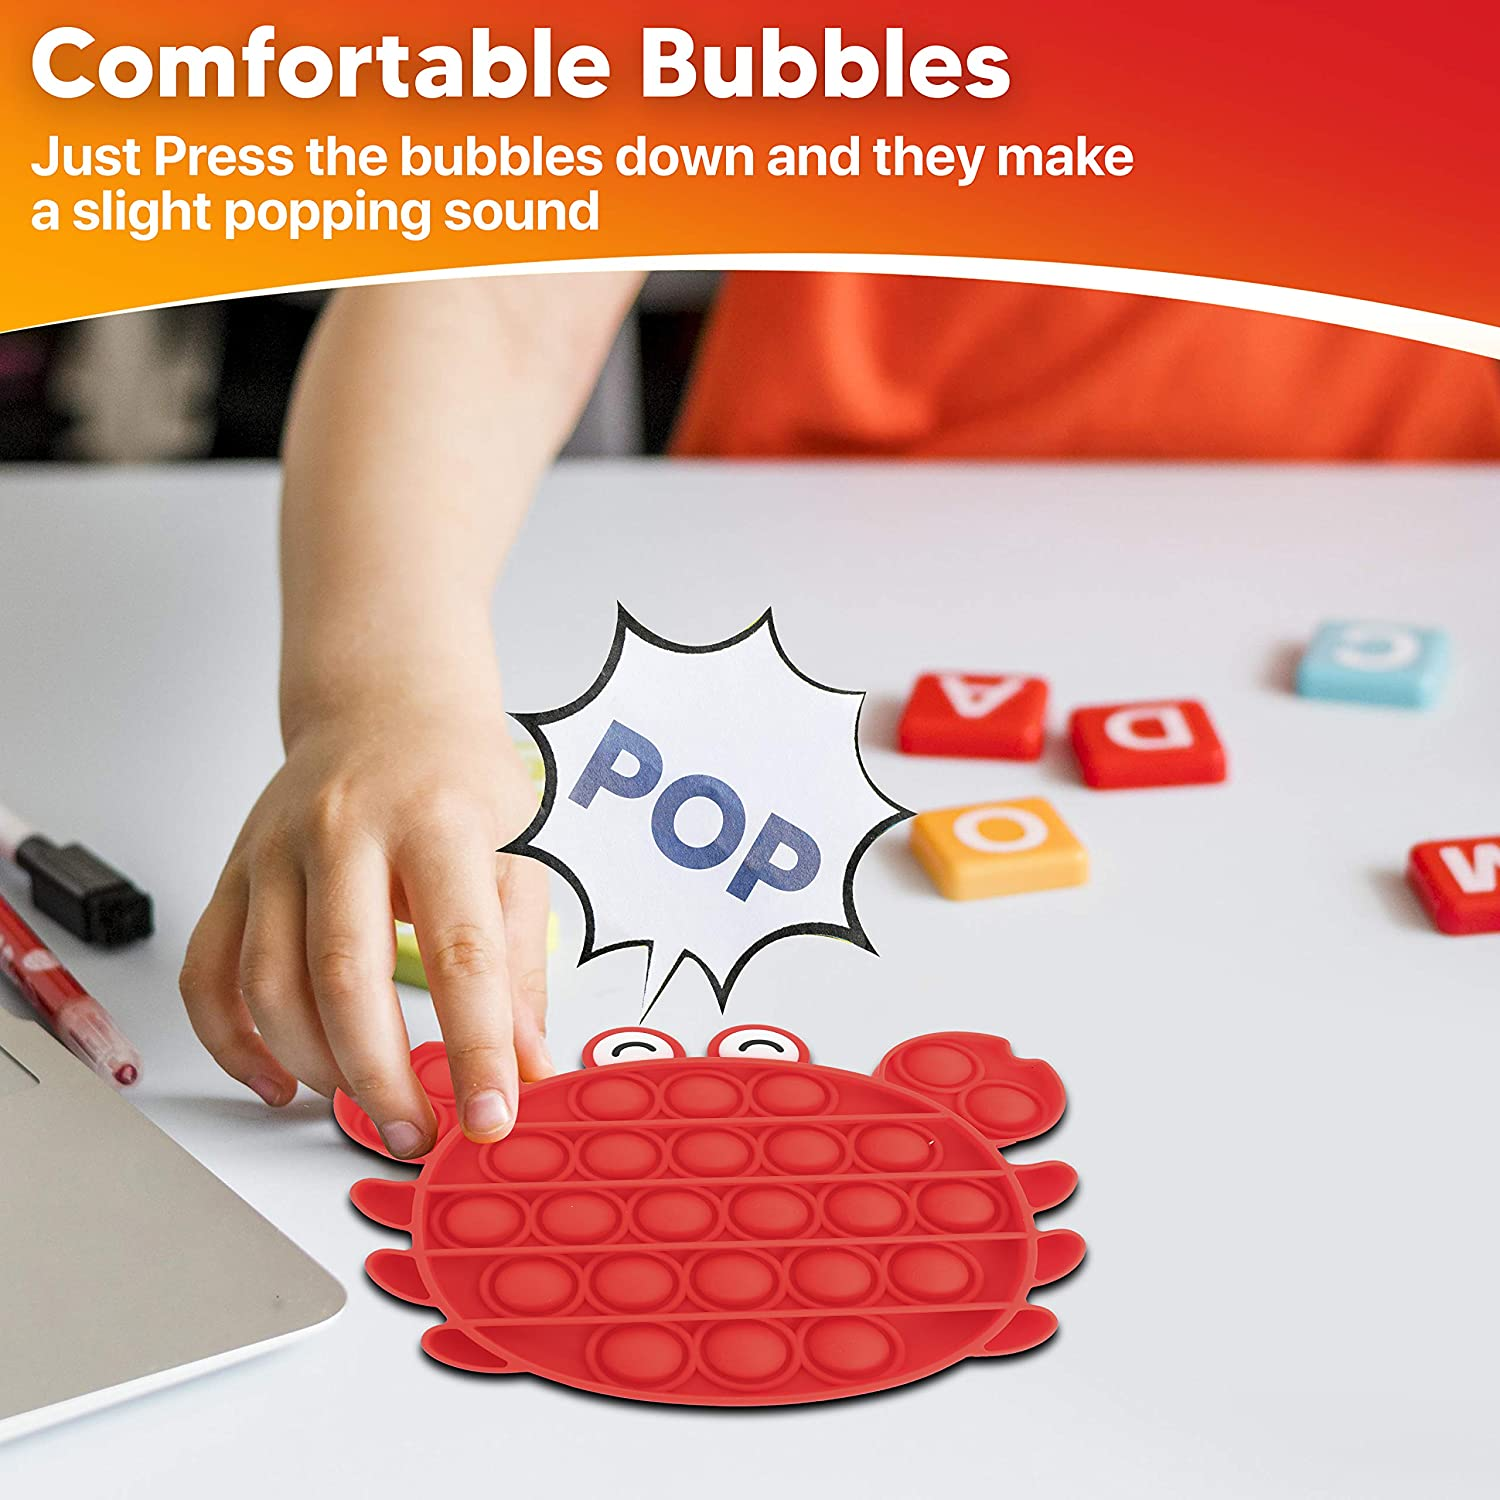 3pcs Bubble Sensory Toy Set for Kids and Adults Lobster Crab Fidget Toy for Relaxation and Stress Relief Octopus Soft Silicone Sensory Fidget Toys Engagenest Fidget Toys